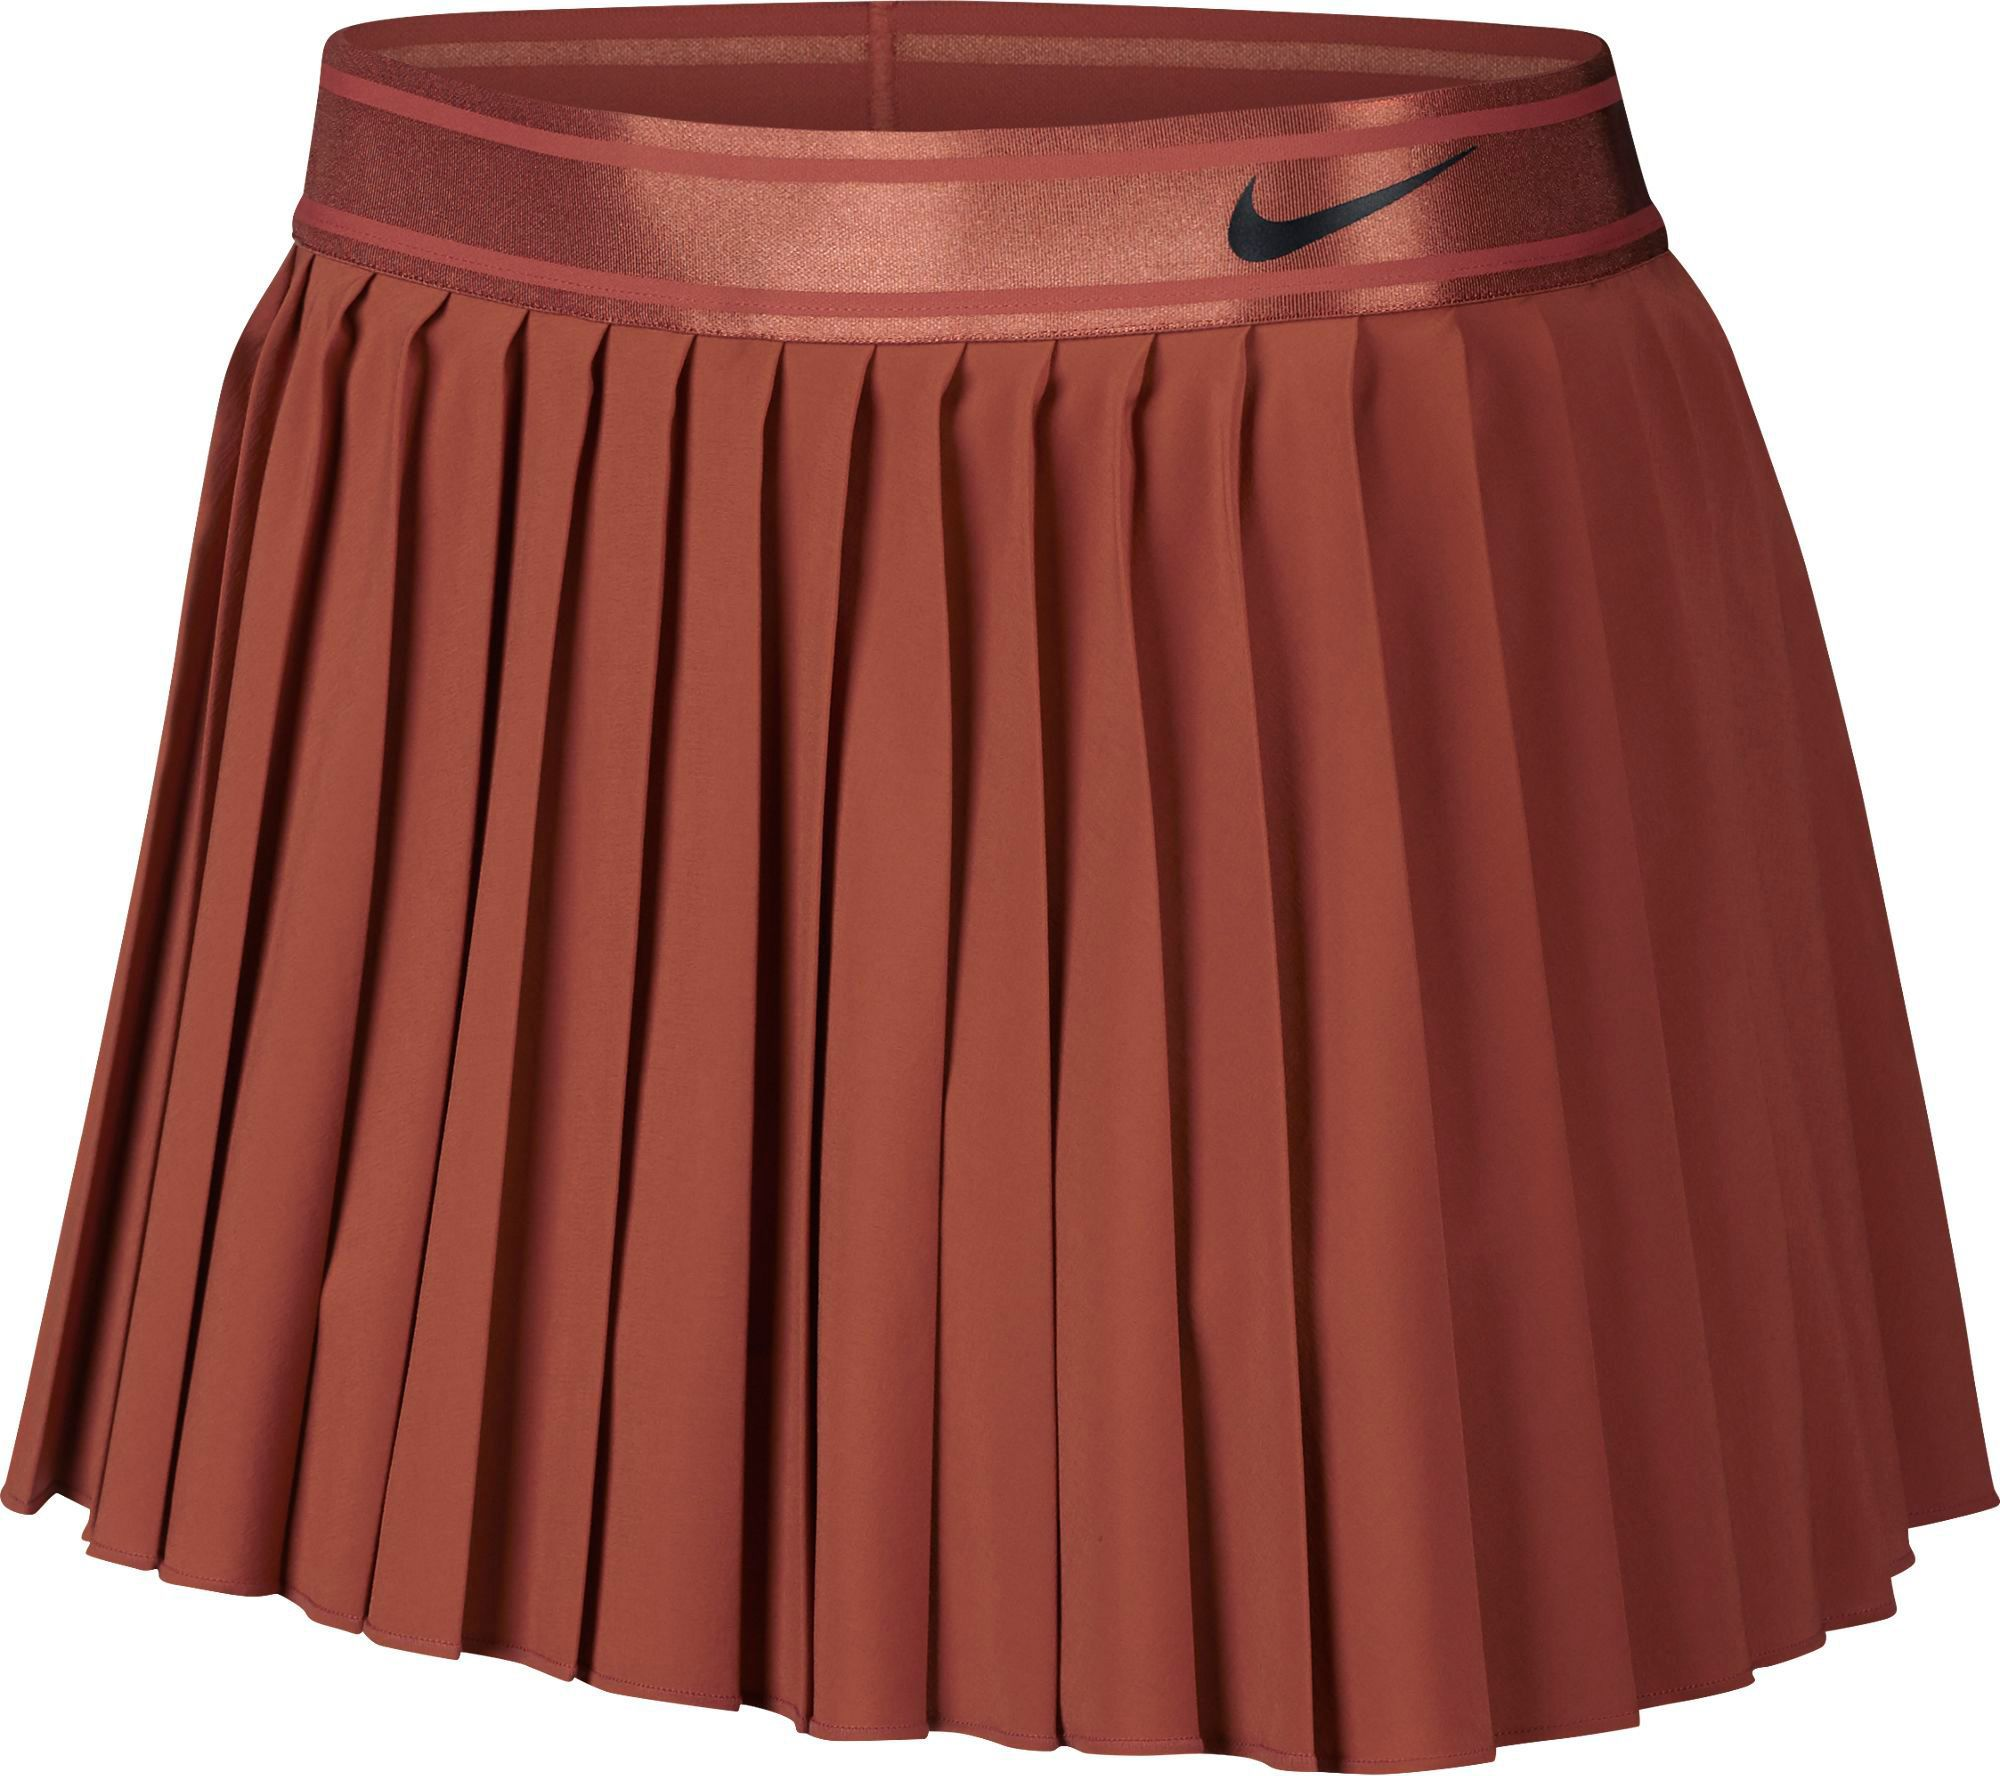 Nike Women S Court Elevated Victory Tennis Skort Bv9231reg S20 In 2020 Tennis Outfit Women Tennis Skort Womens Tennis Fashion